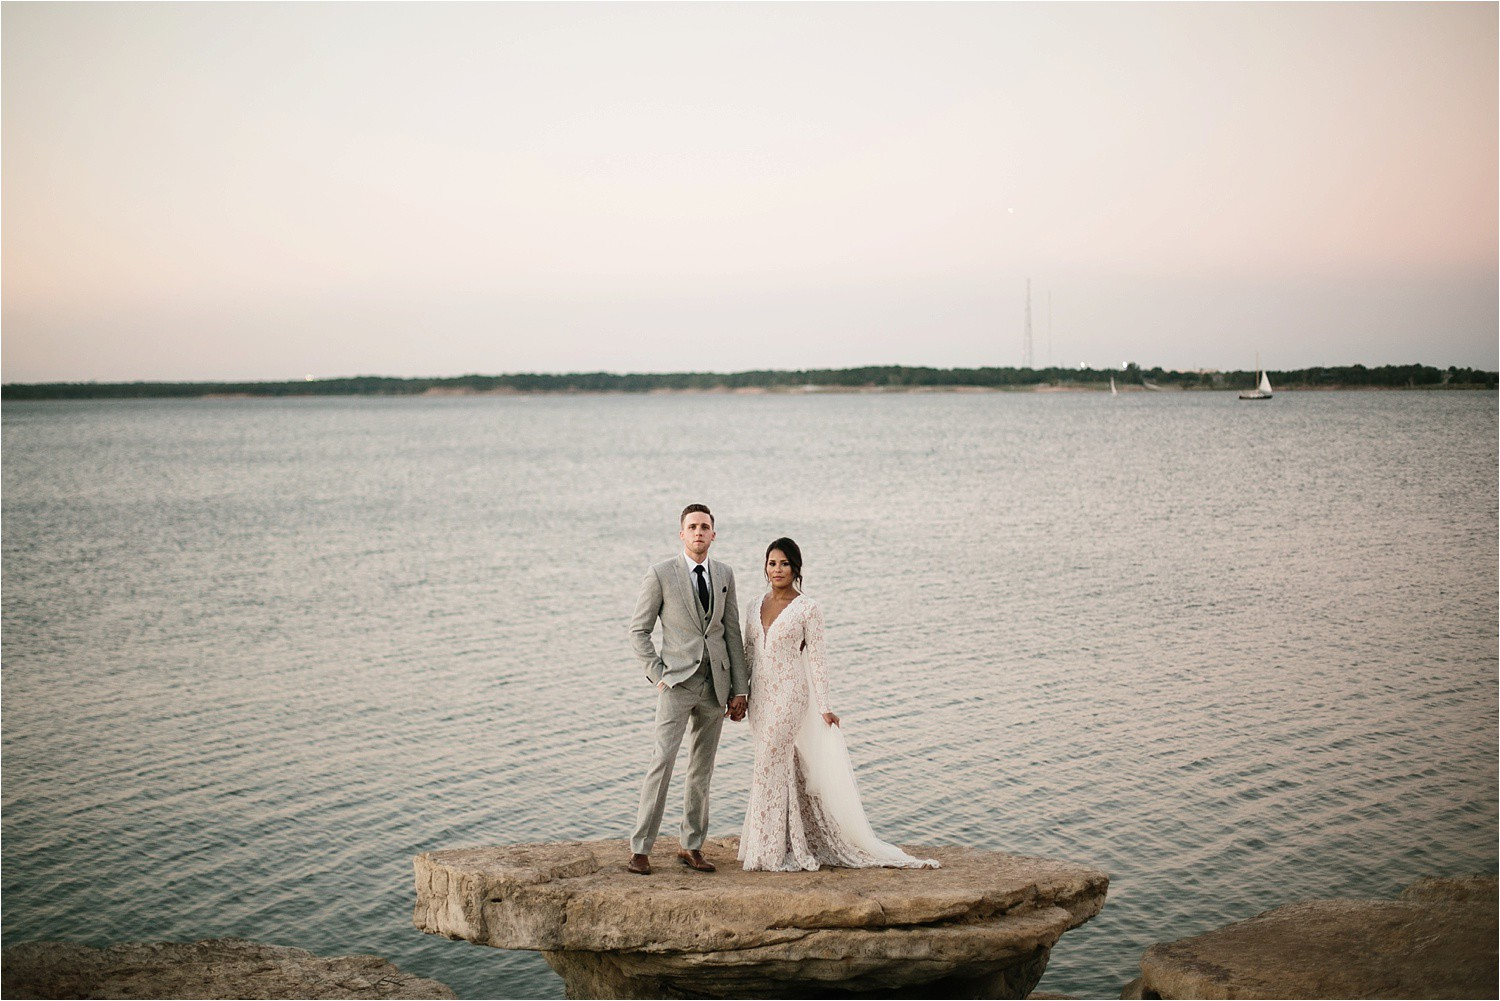 mallory-tyler-__-an-intimate-after-session-at-grapevine-lake-by-north-texas-wedding-photographer-rachel-meagan-photography-_-49